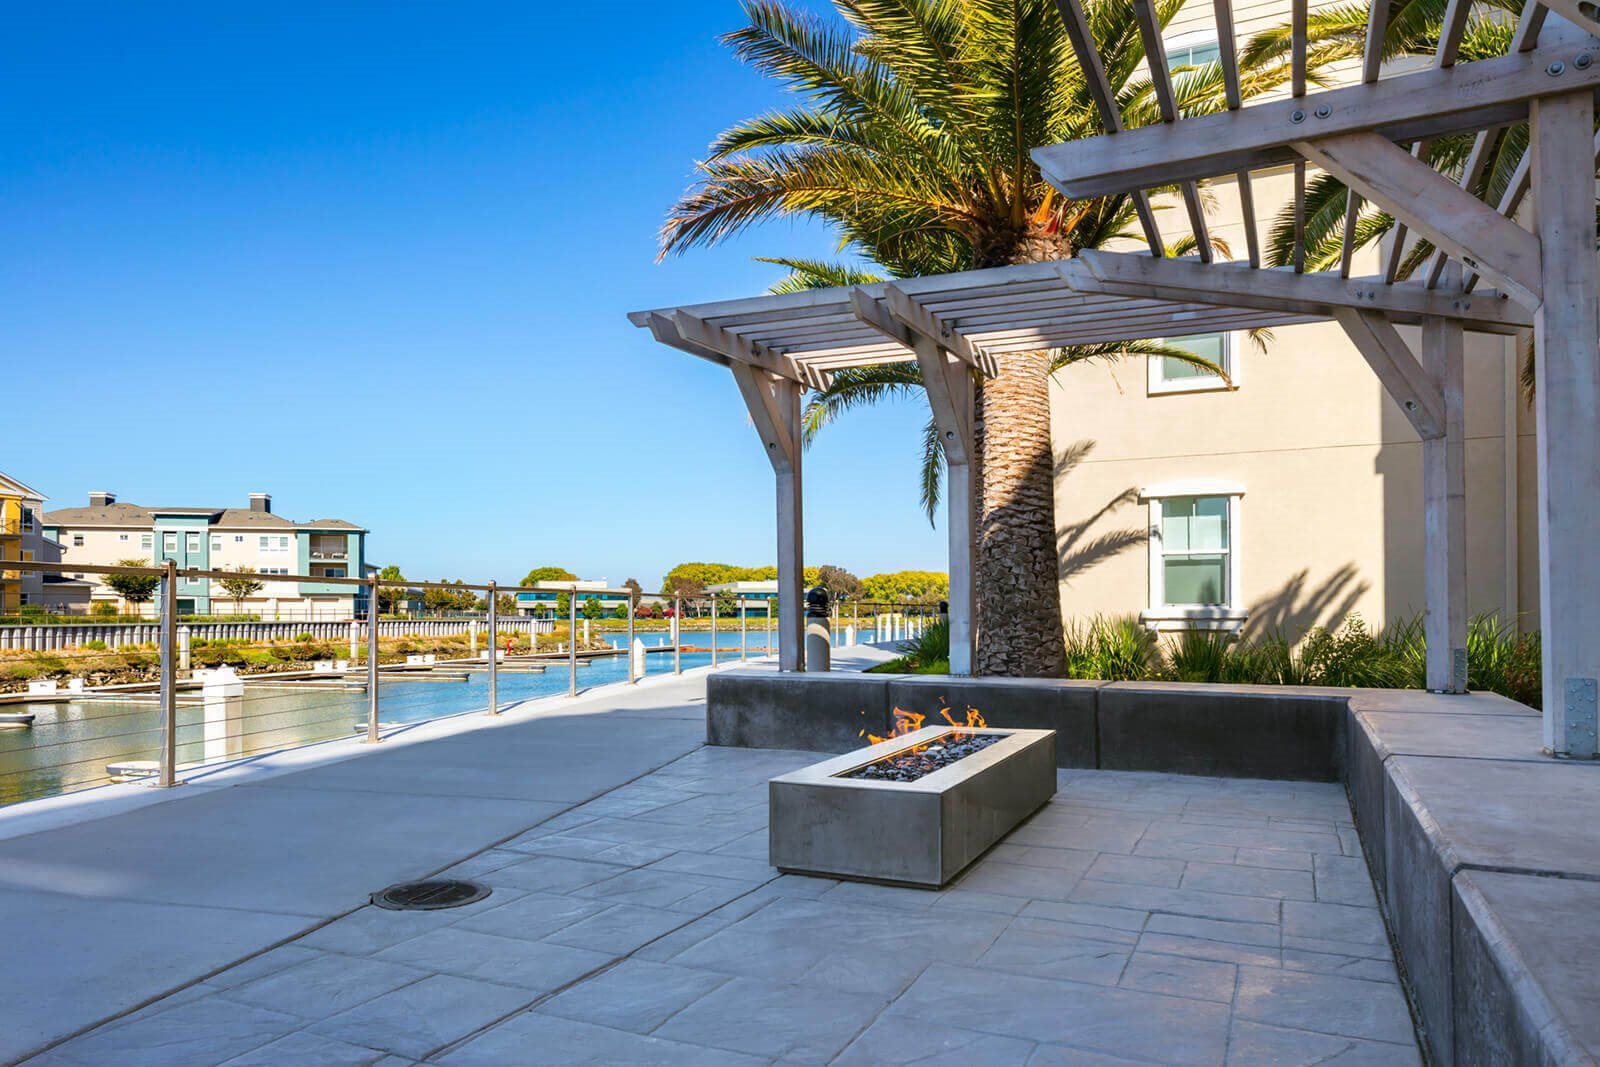 Fire-Pit In Courtyard at Blu Harbor by Windsor, 1 Blu Harbor Blvd, Redwood City